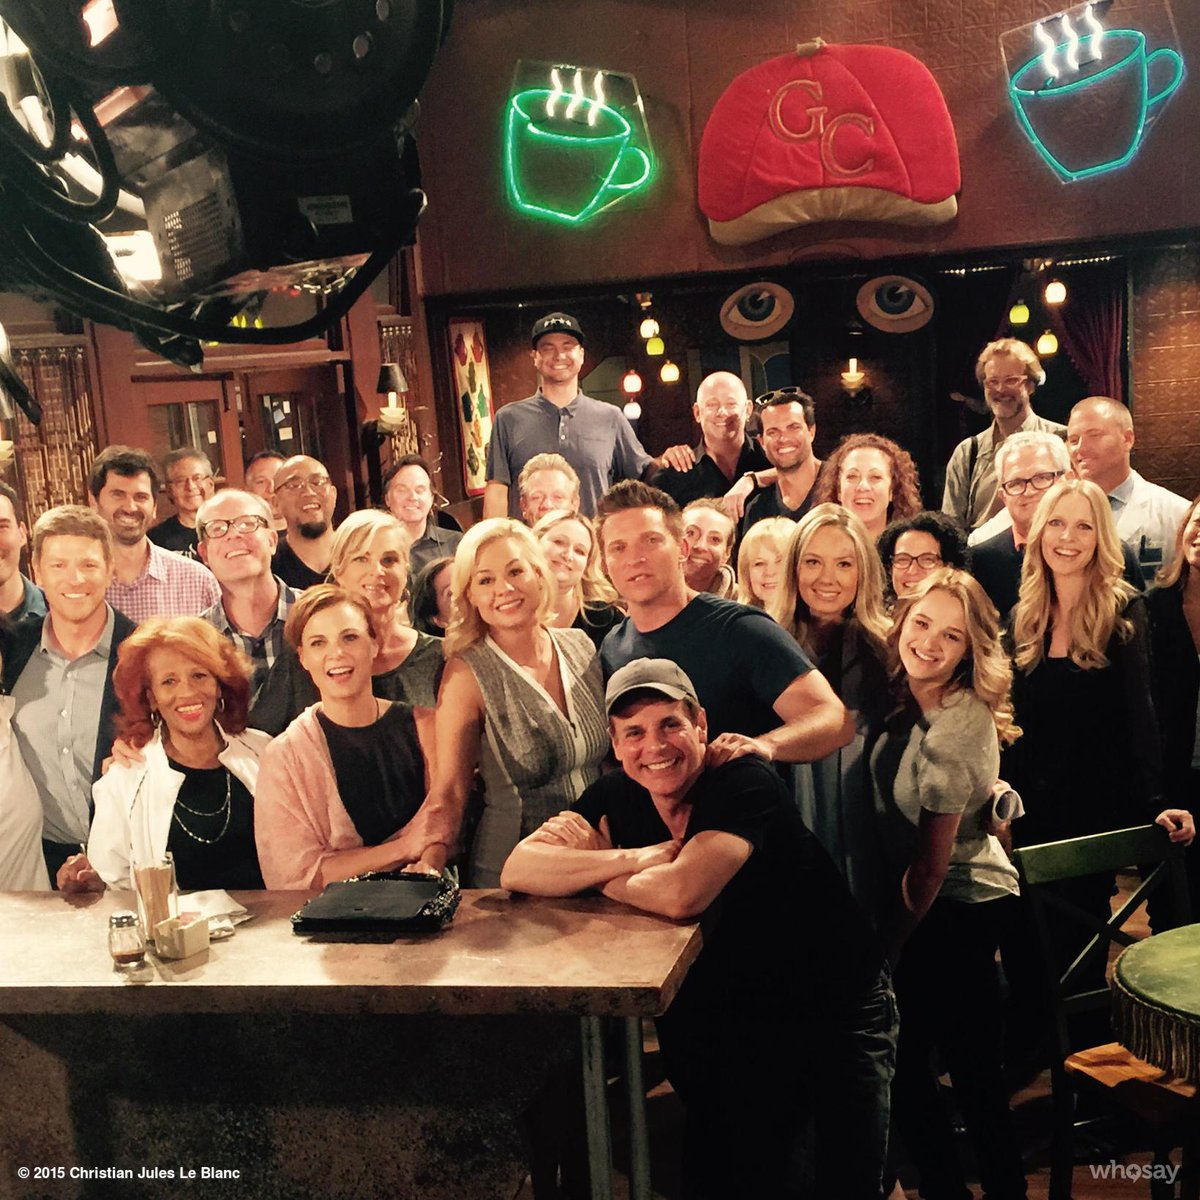 @JessicaCollins knocks it out of the park on her last #YR day!!! @YandR_CBS @CBSDAYTIME @YRInsider @Global_TV http://t.co/AnXNDBdZjE